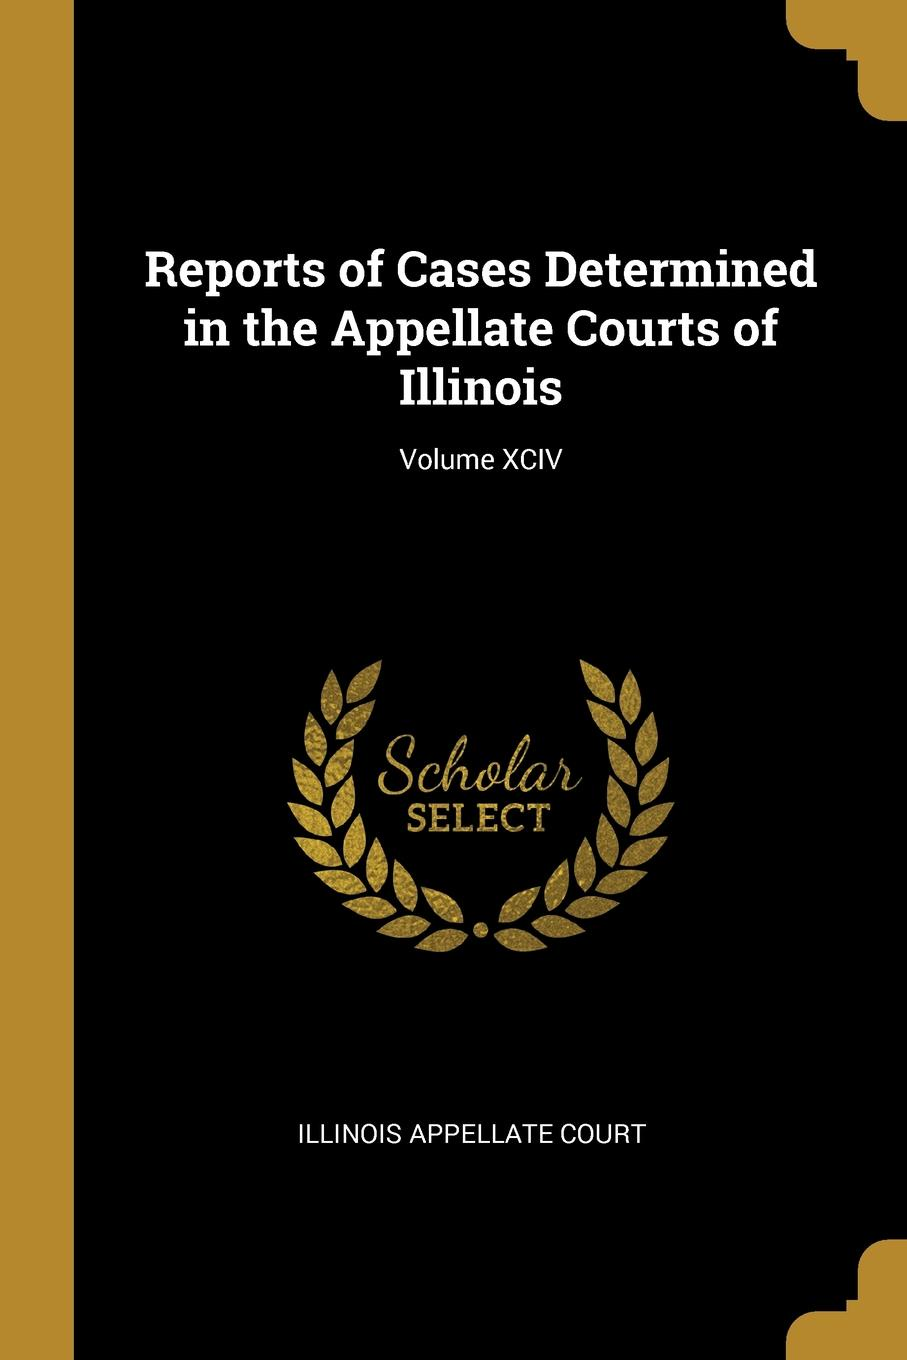 Illinois Appellate Court Reports of Cases Determined in the Appellate Courts of Illinois; Volume XCIV